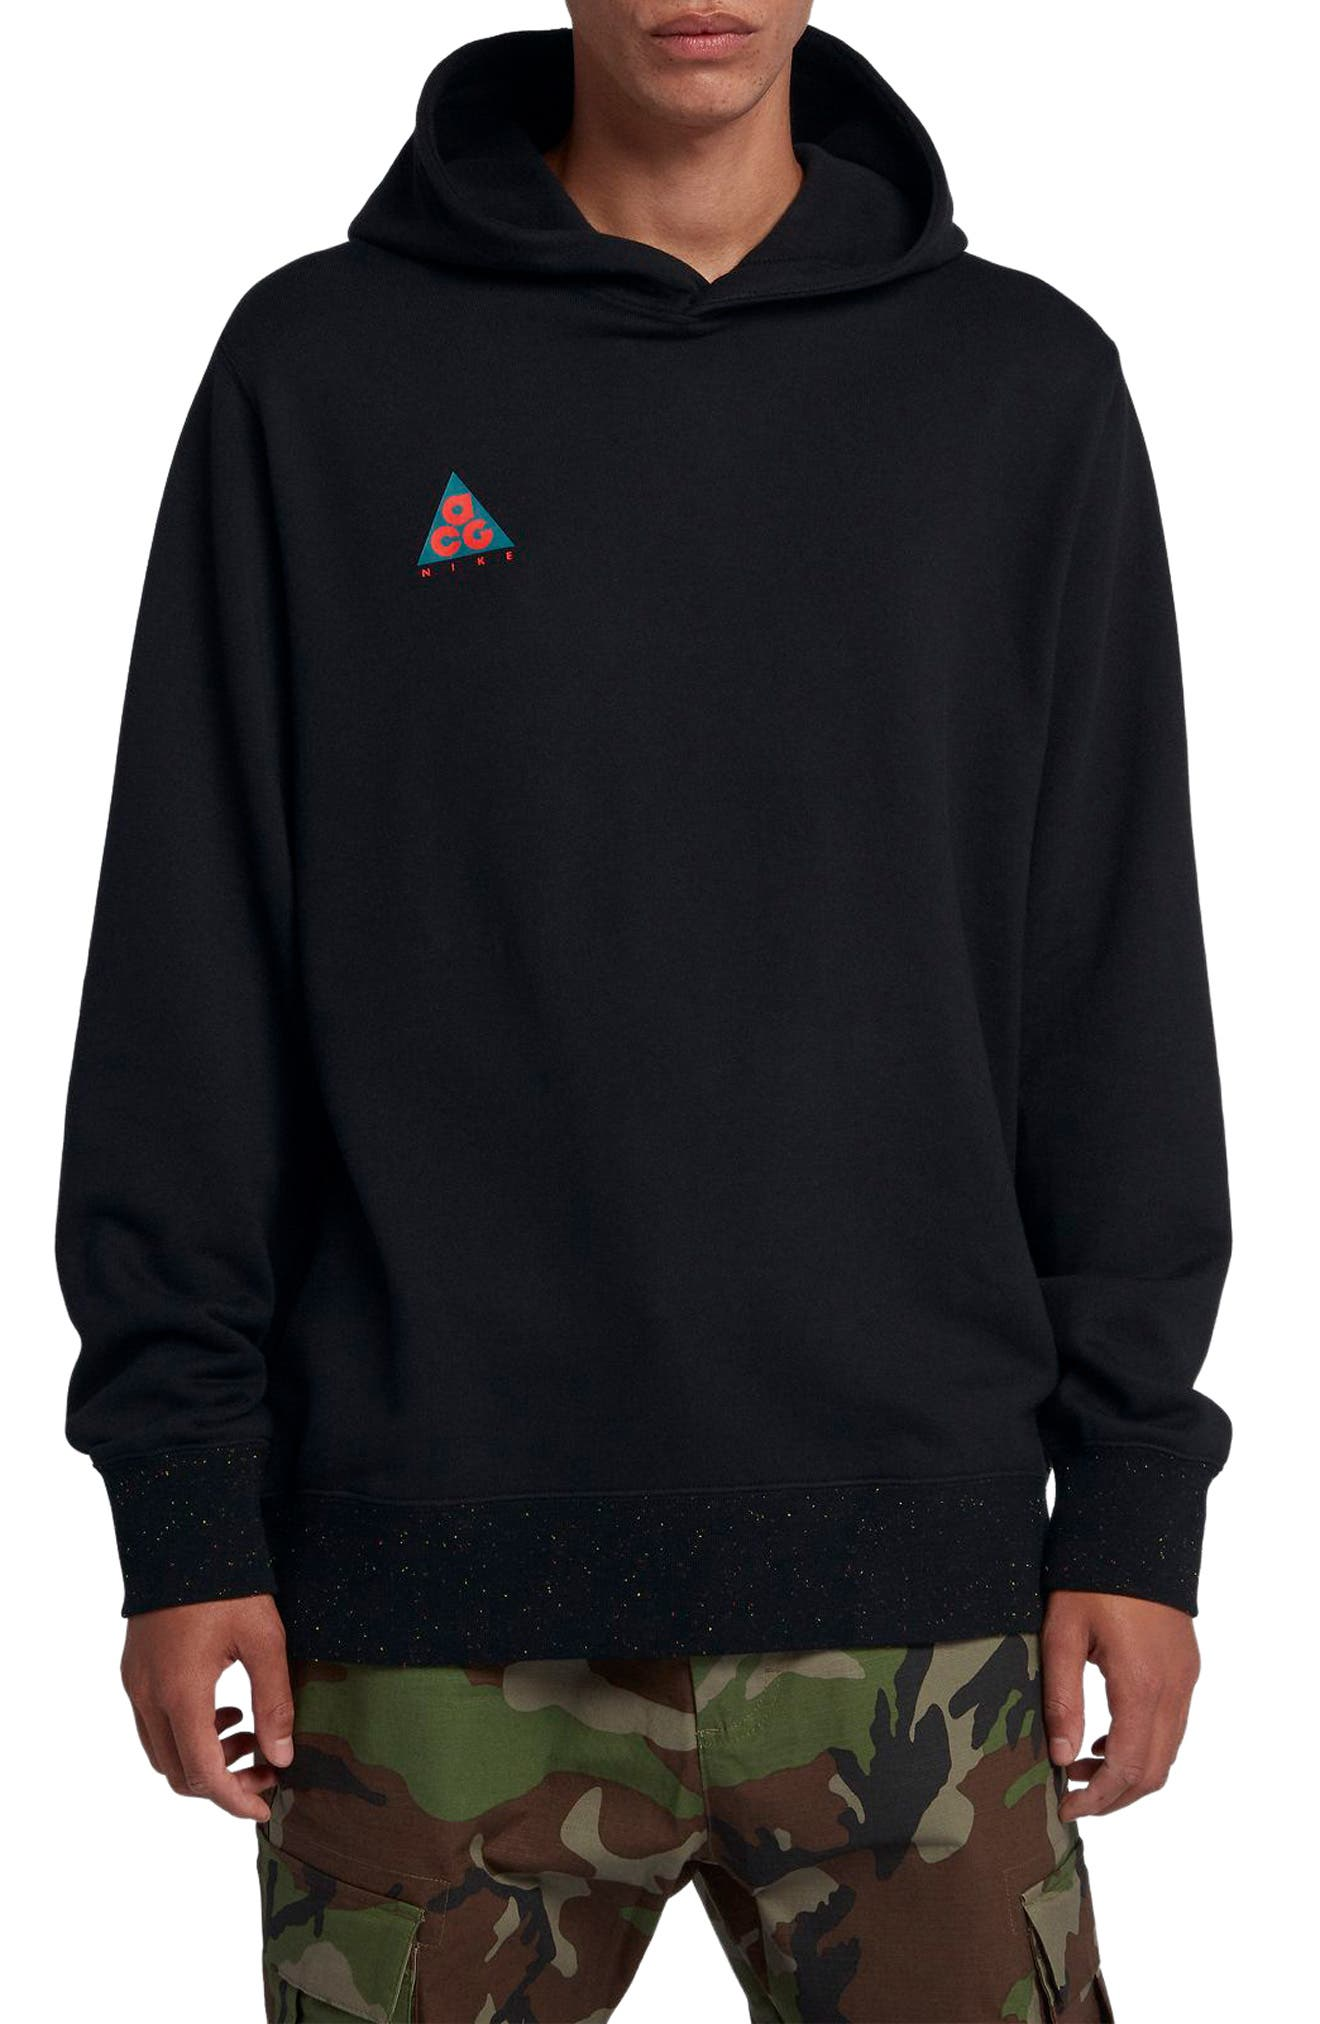 Sportswear ACG Pullover Hoodie,                             Main thumbnail 1, color,                             010